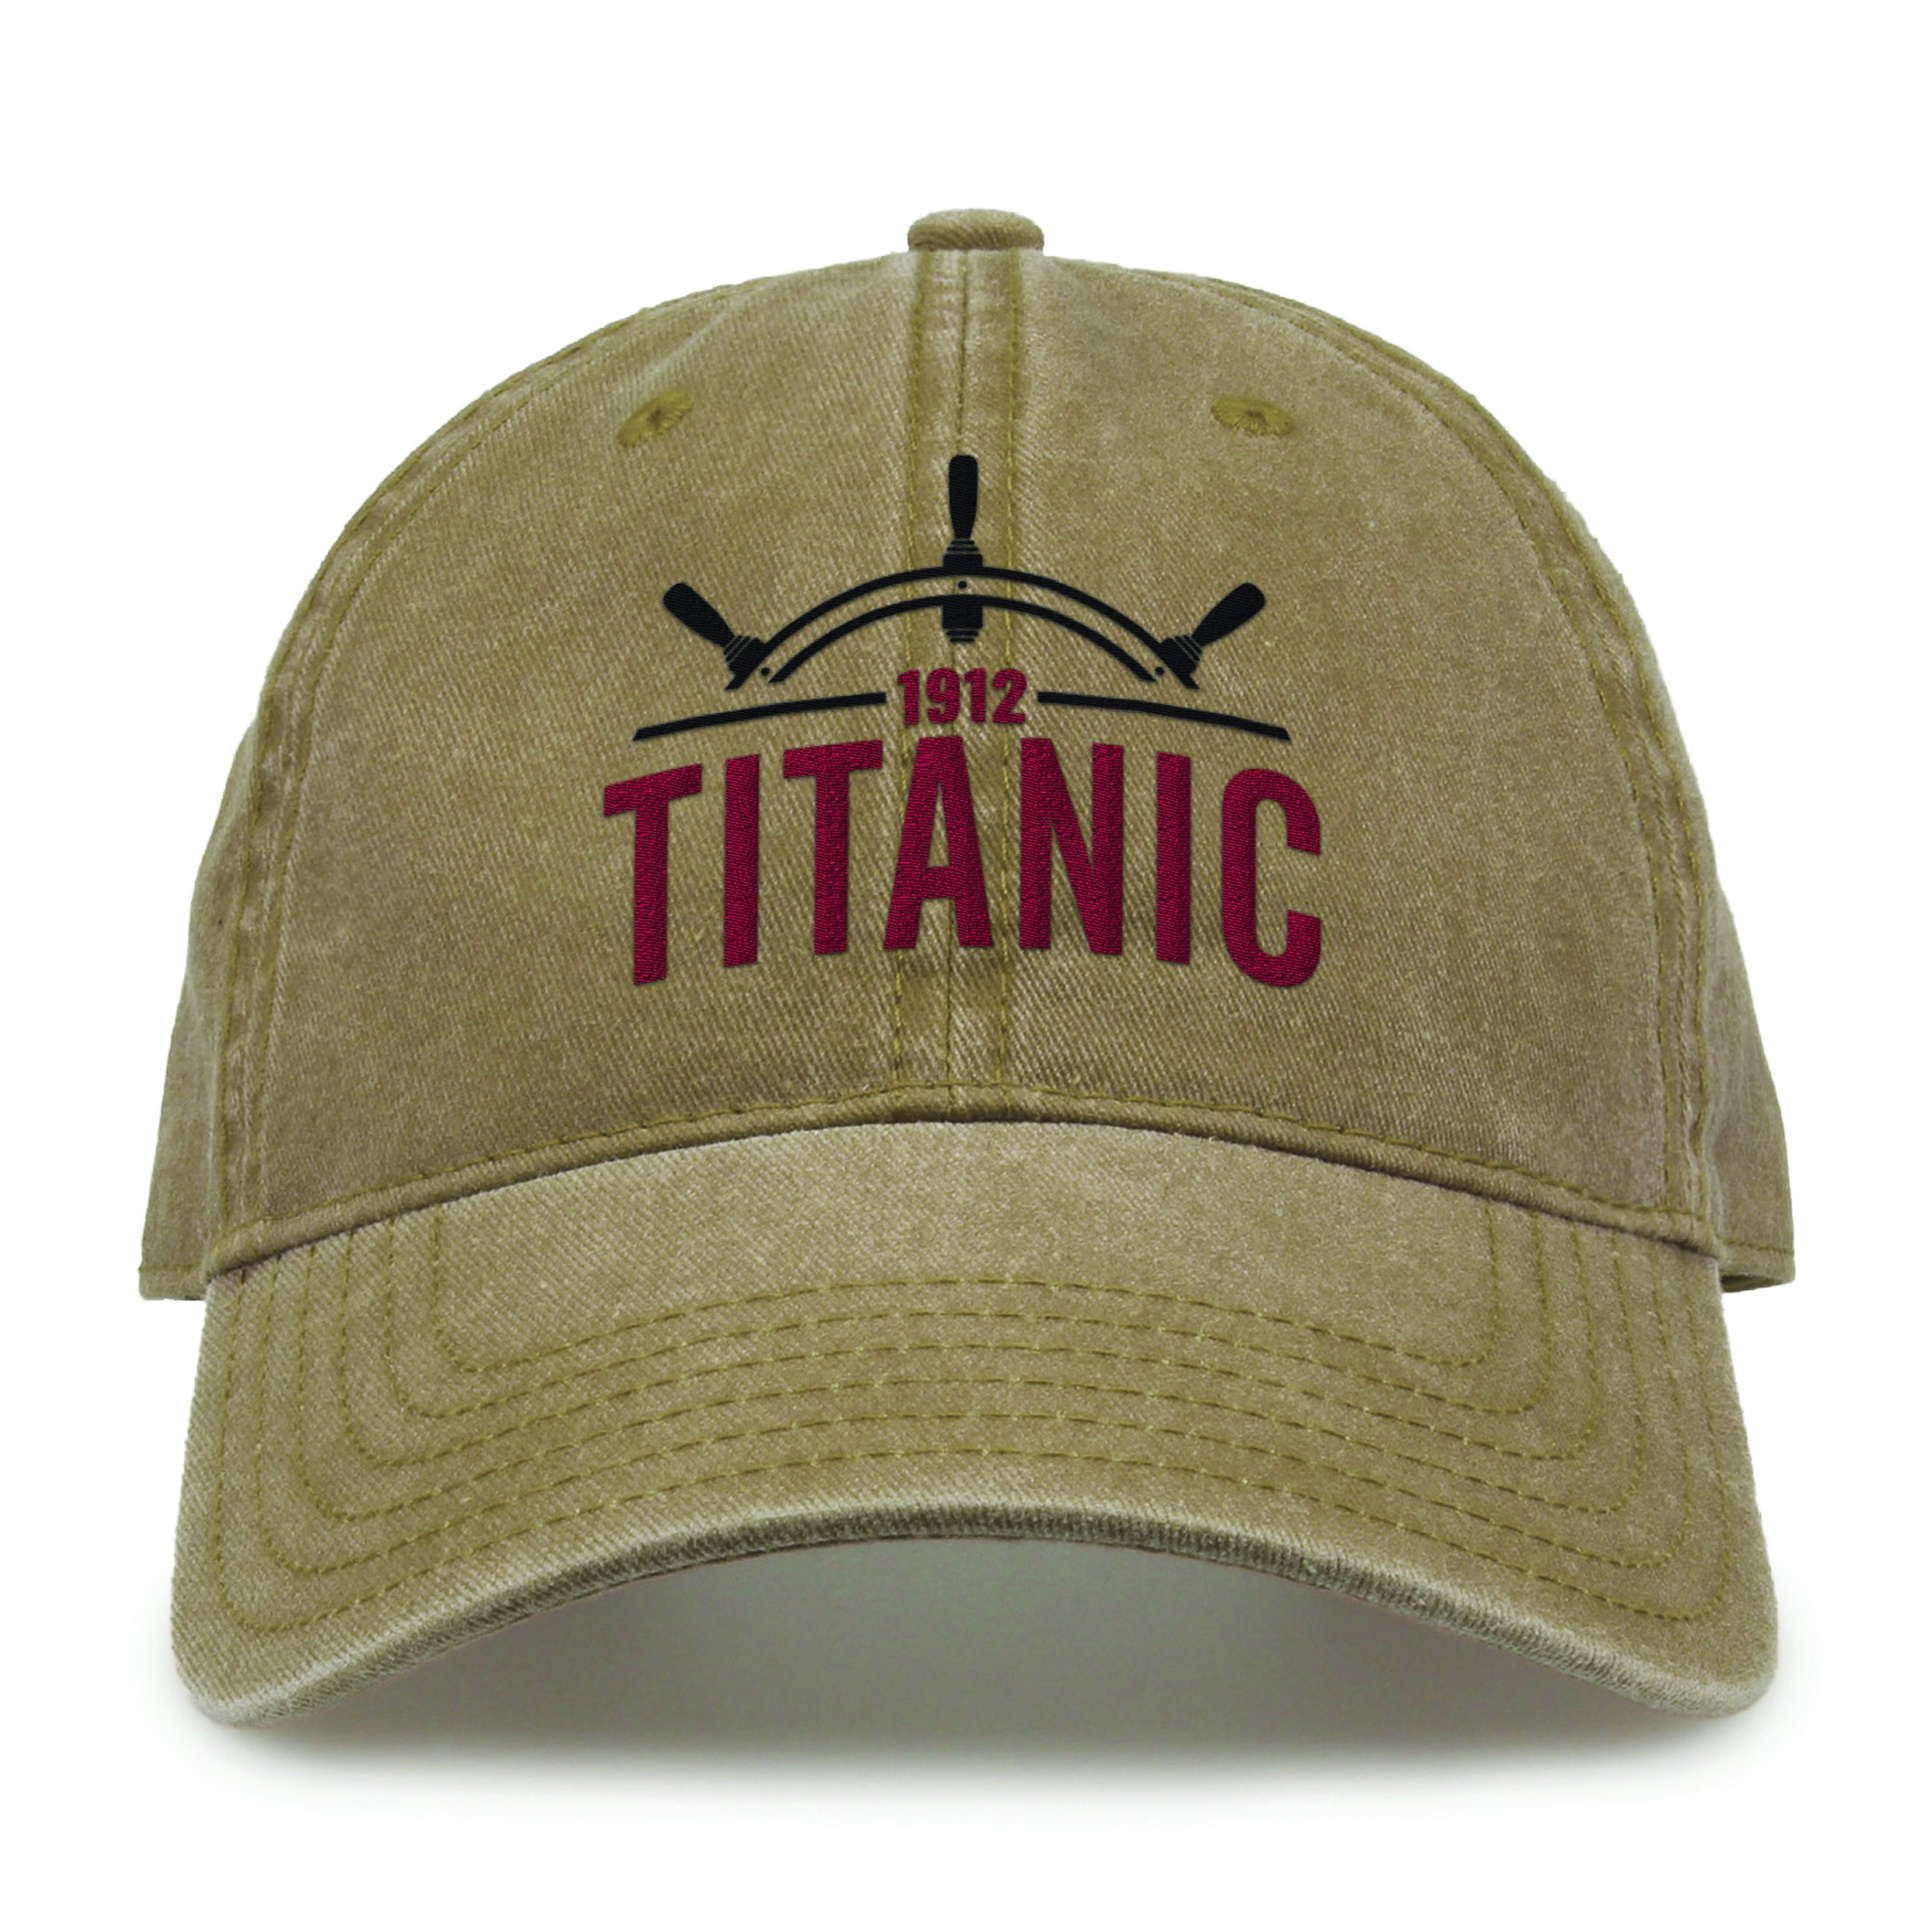 Titanic 1912 Ship Wheel Cap Khaki